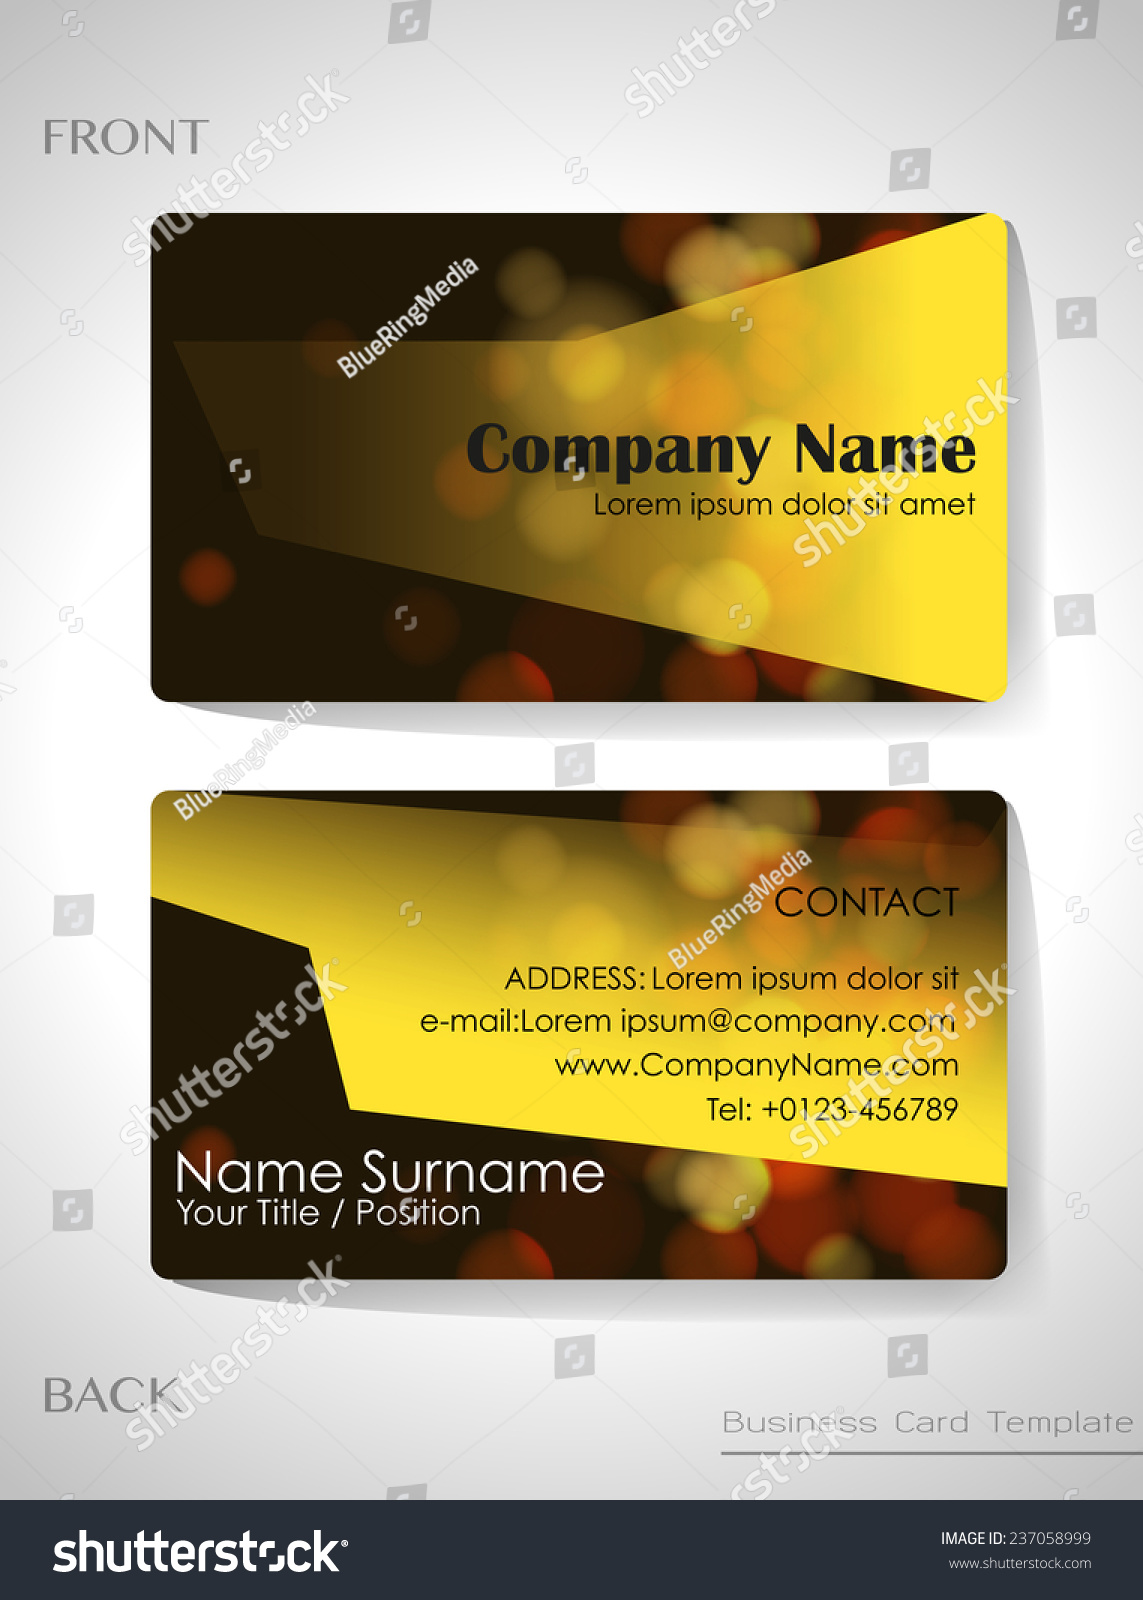 Back business card images free business cards front and back business card template word images free business front and back business card noc magicingreecefo Images